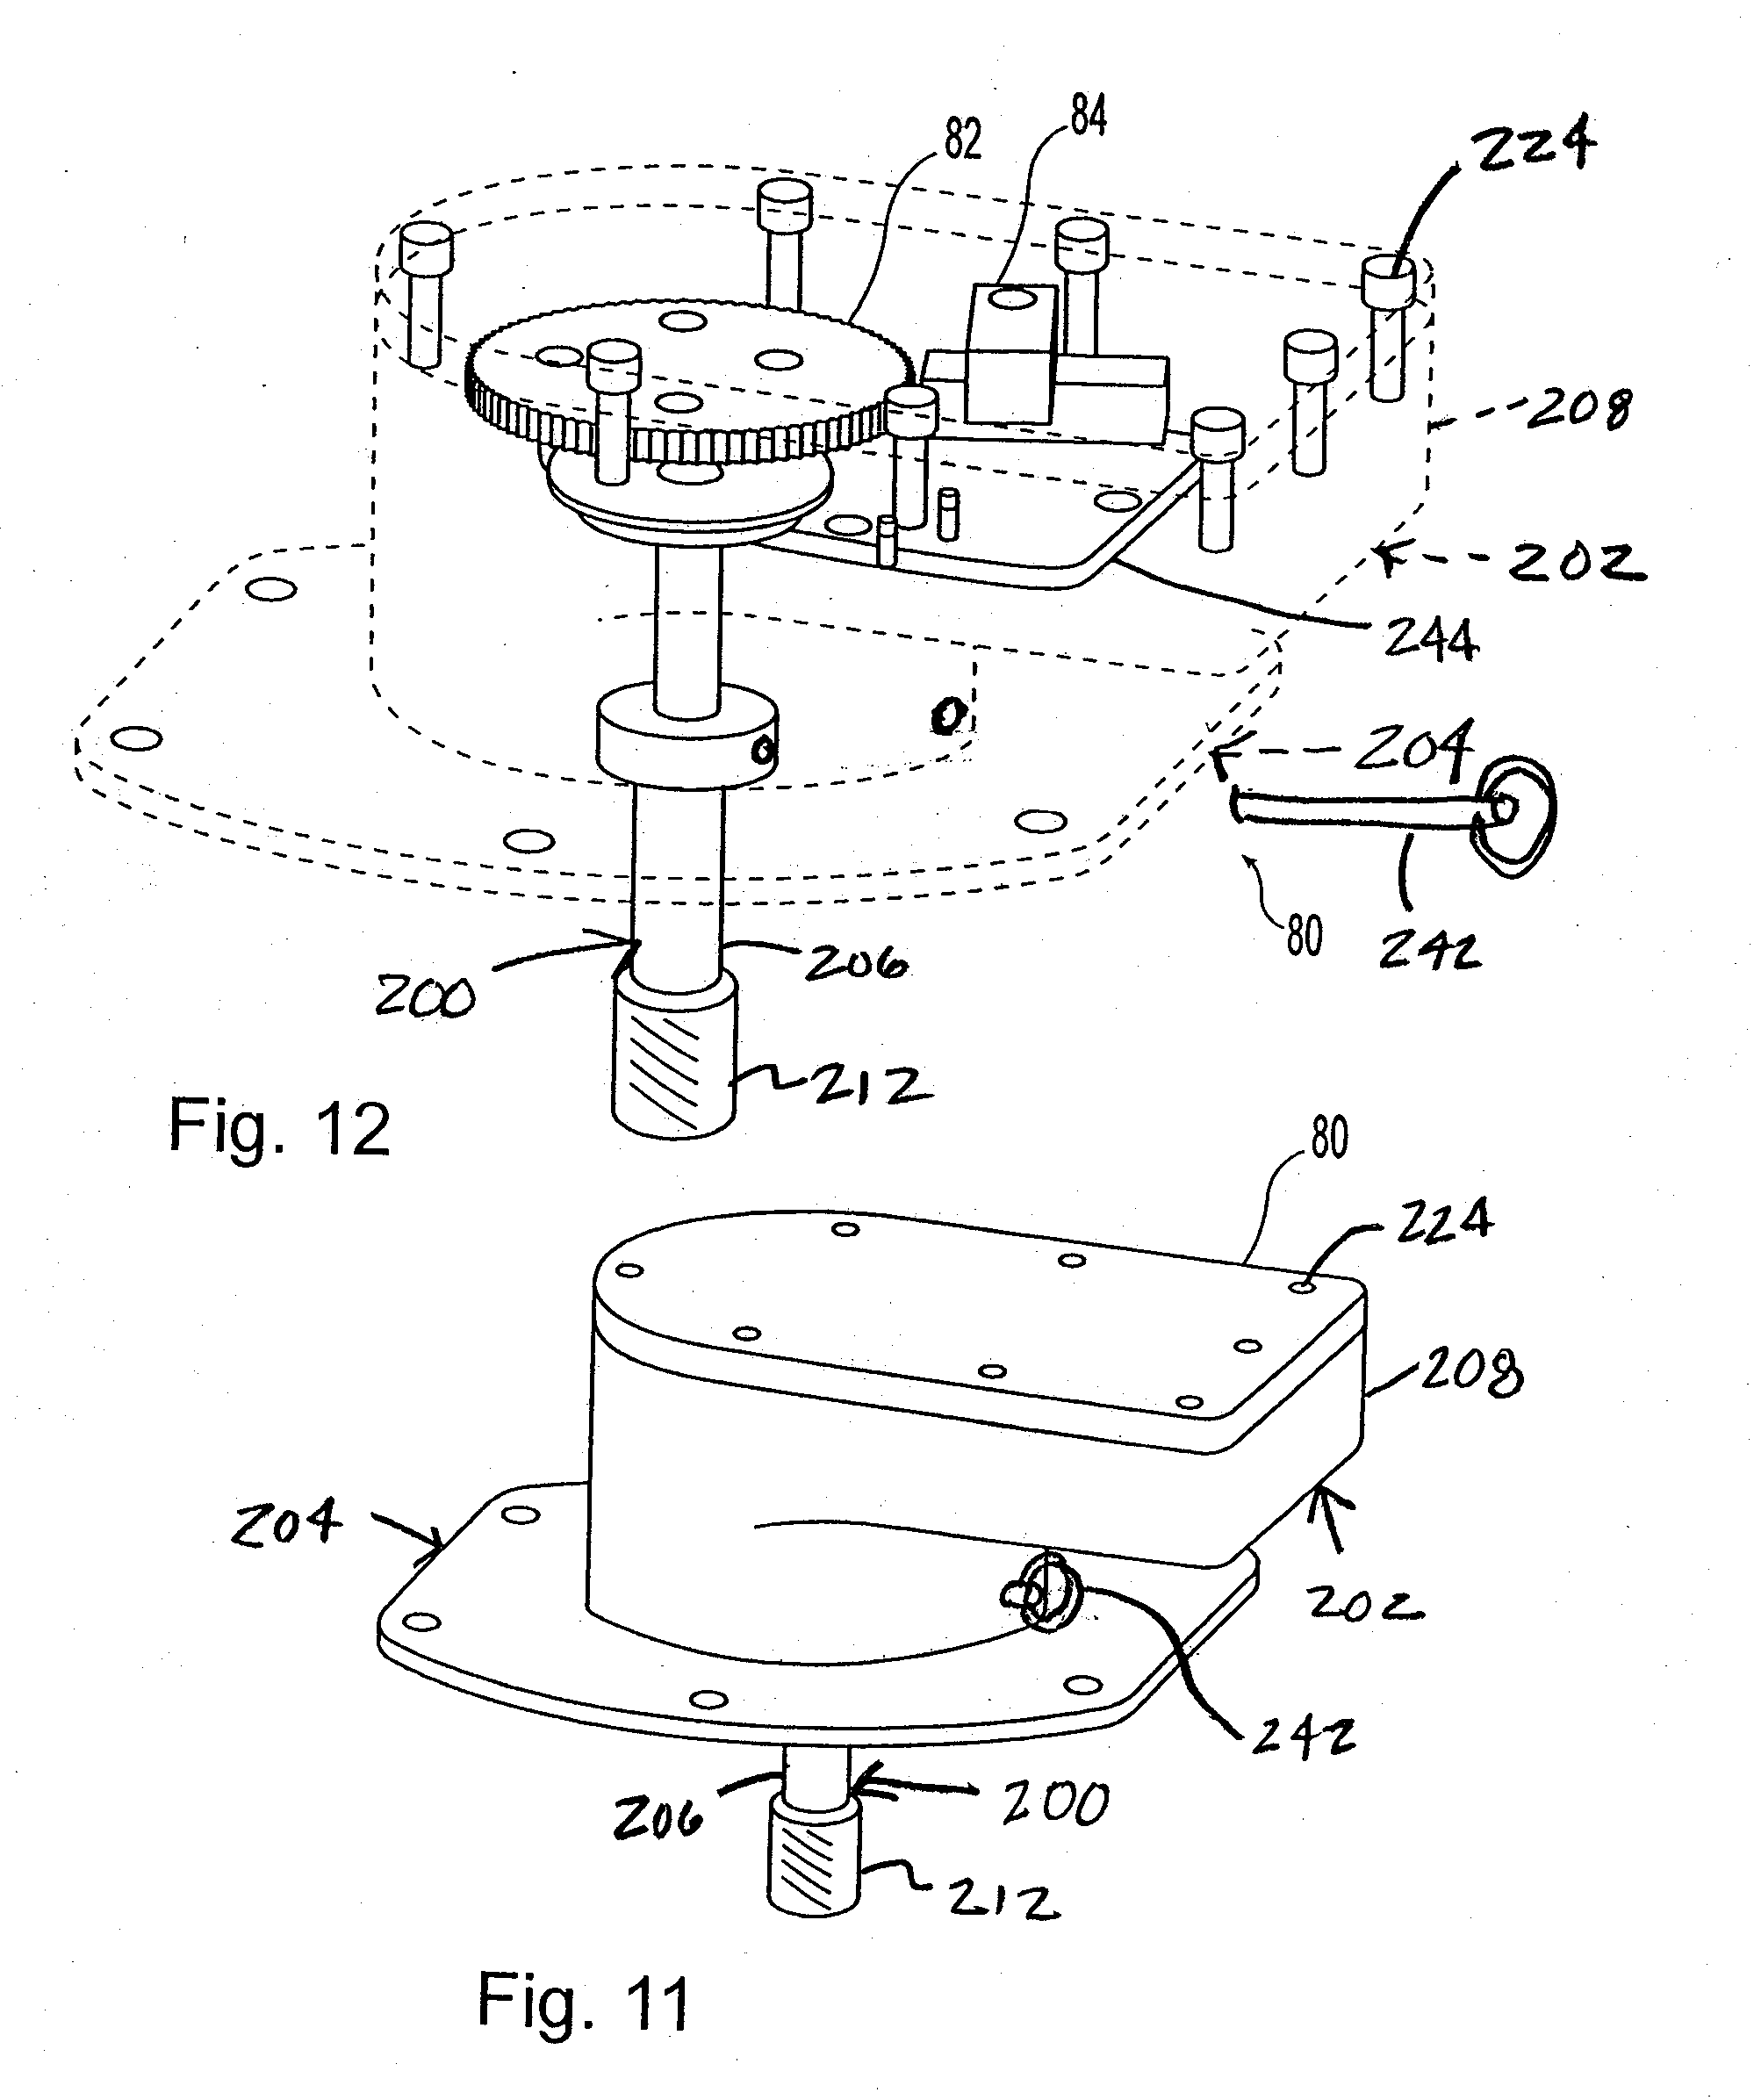 Speed And Position Sensing Device